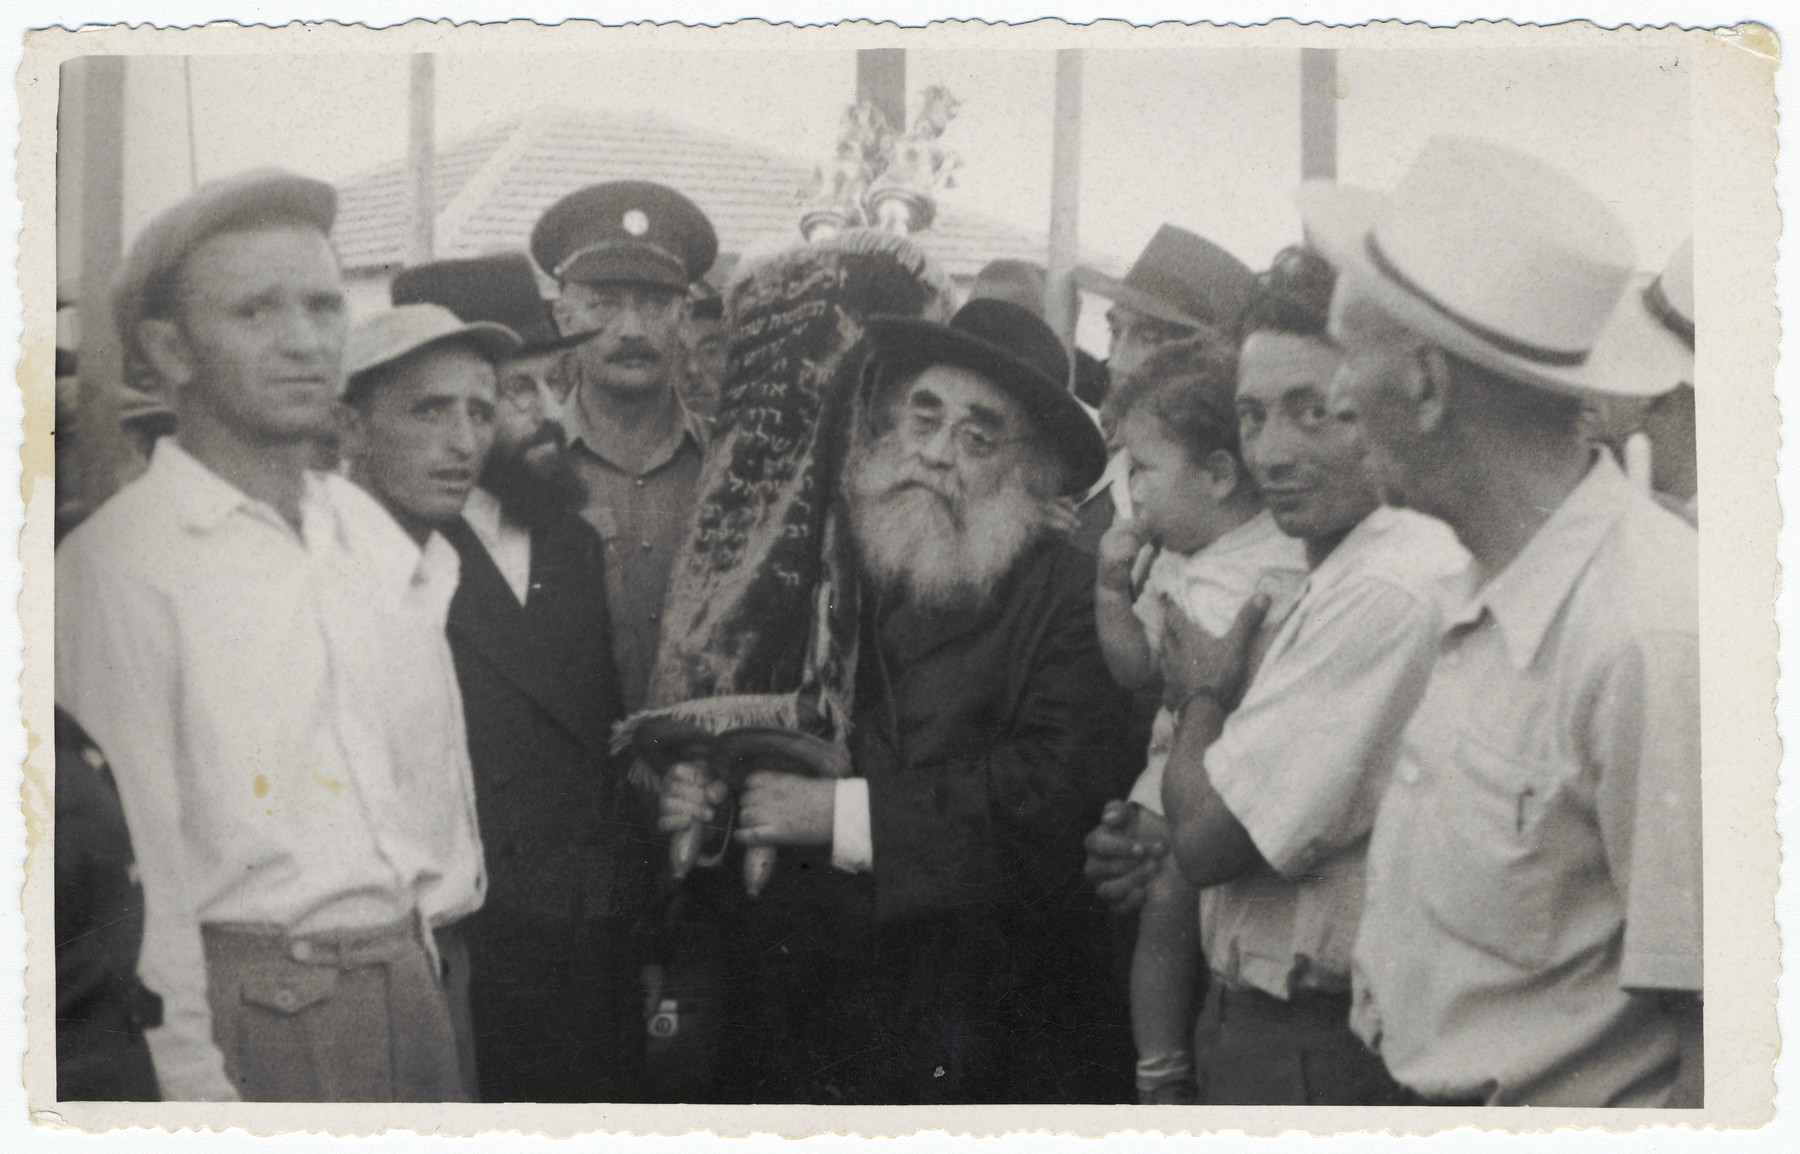 A rabbi, surrounded by congregants, carries in a new torah scroll in the settlement, Kiryat Bialik.  Pictured on the right is Josef Fischer holding his young son, Zev.